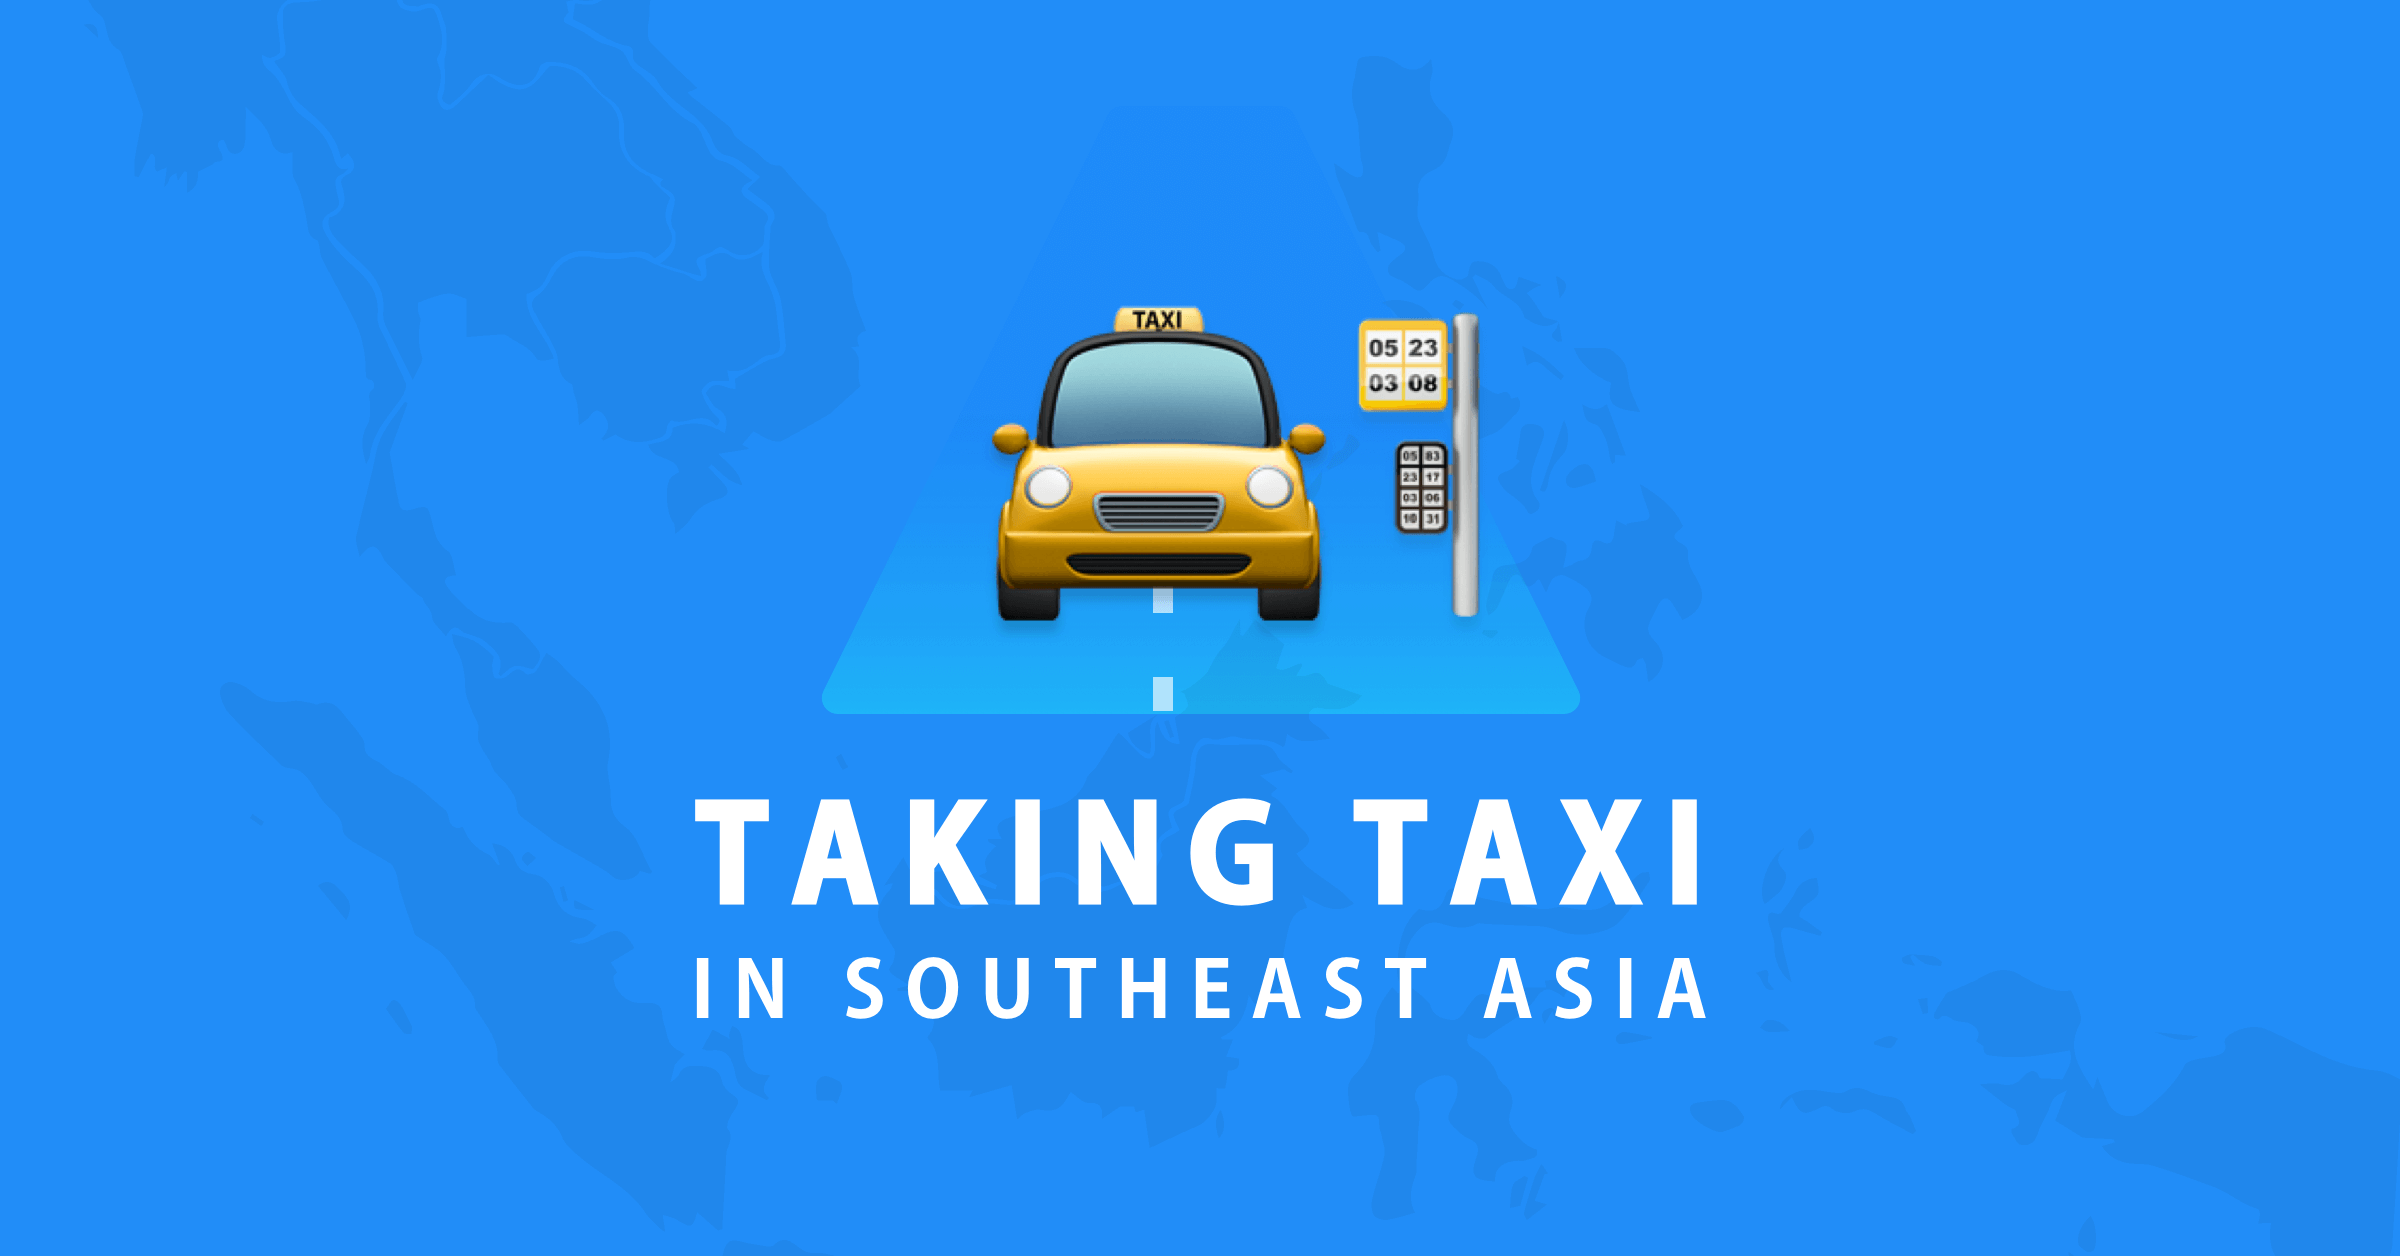 8 taxi alternatives for corporate travellers in Southeast Asia